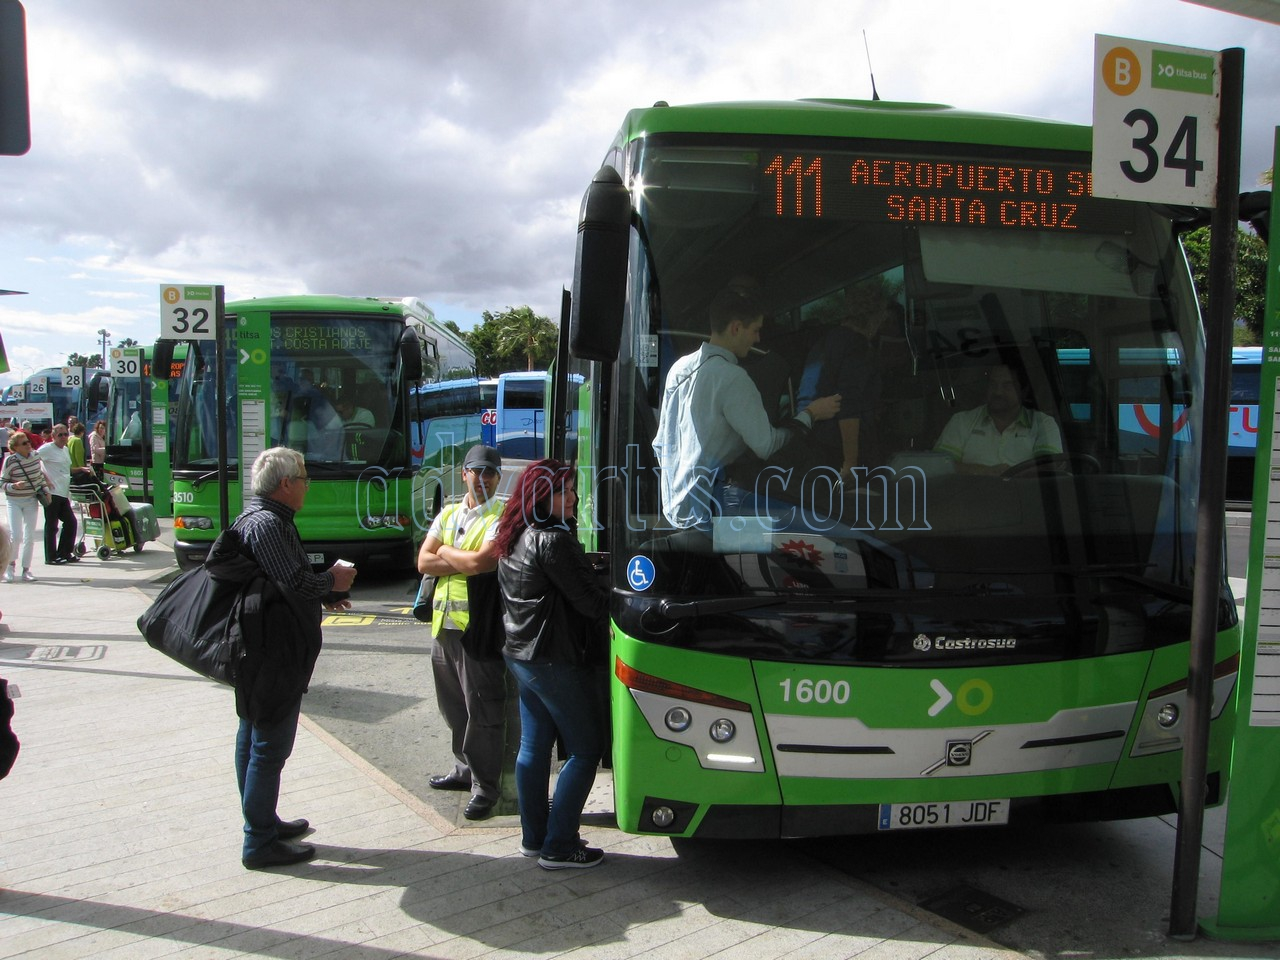 Tenerife bus | Tenerife airport bus 111 | Bus from Tenerife South airport to Santa Cruz